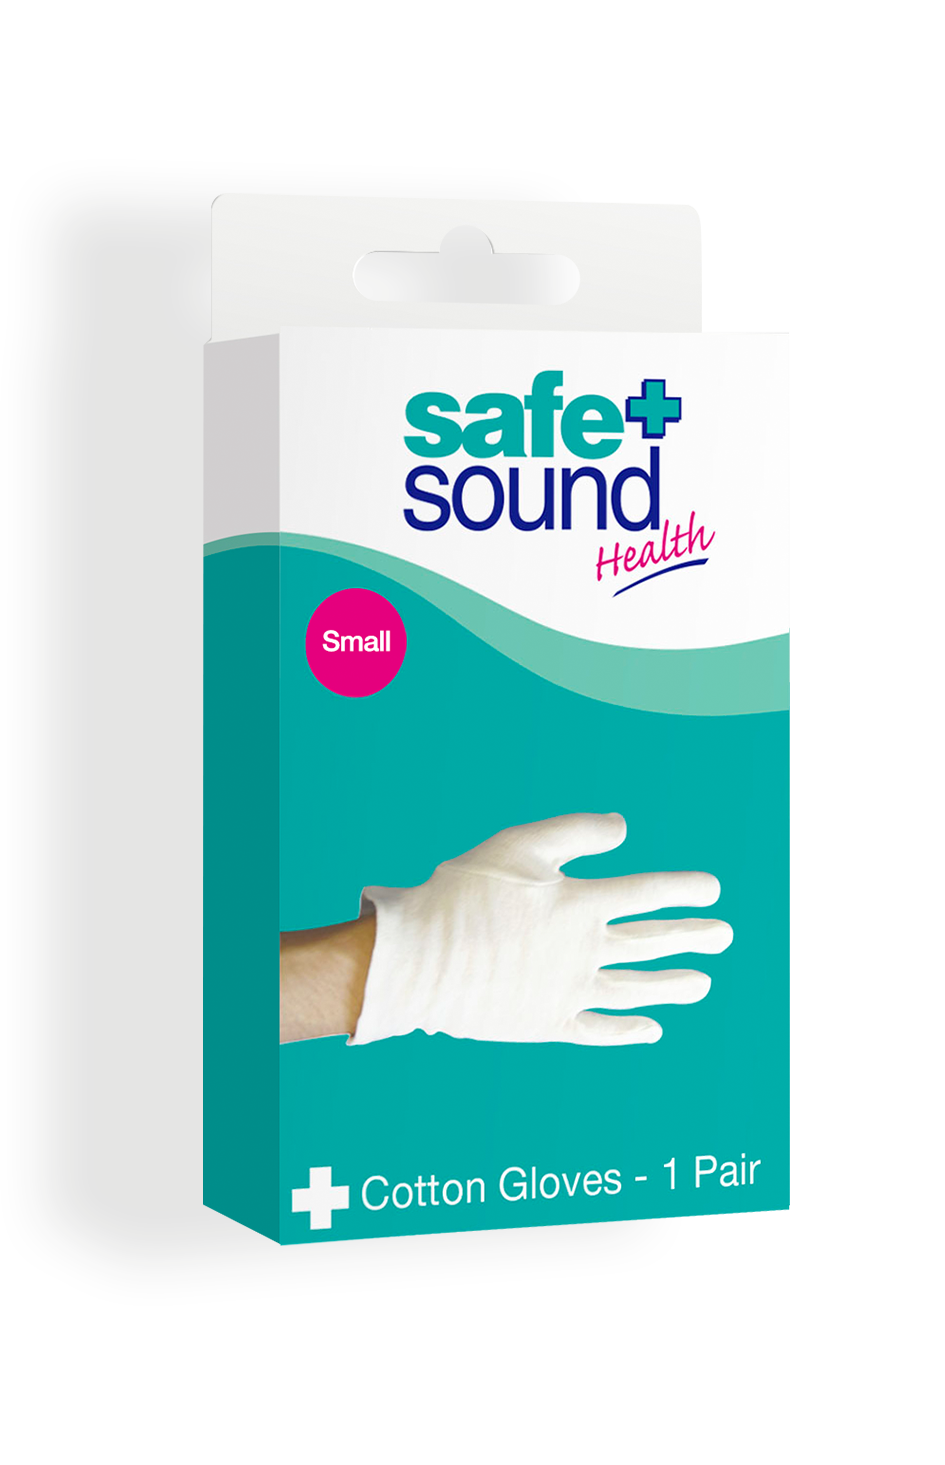 Safe and Sound Health Small Cotton Gloves